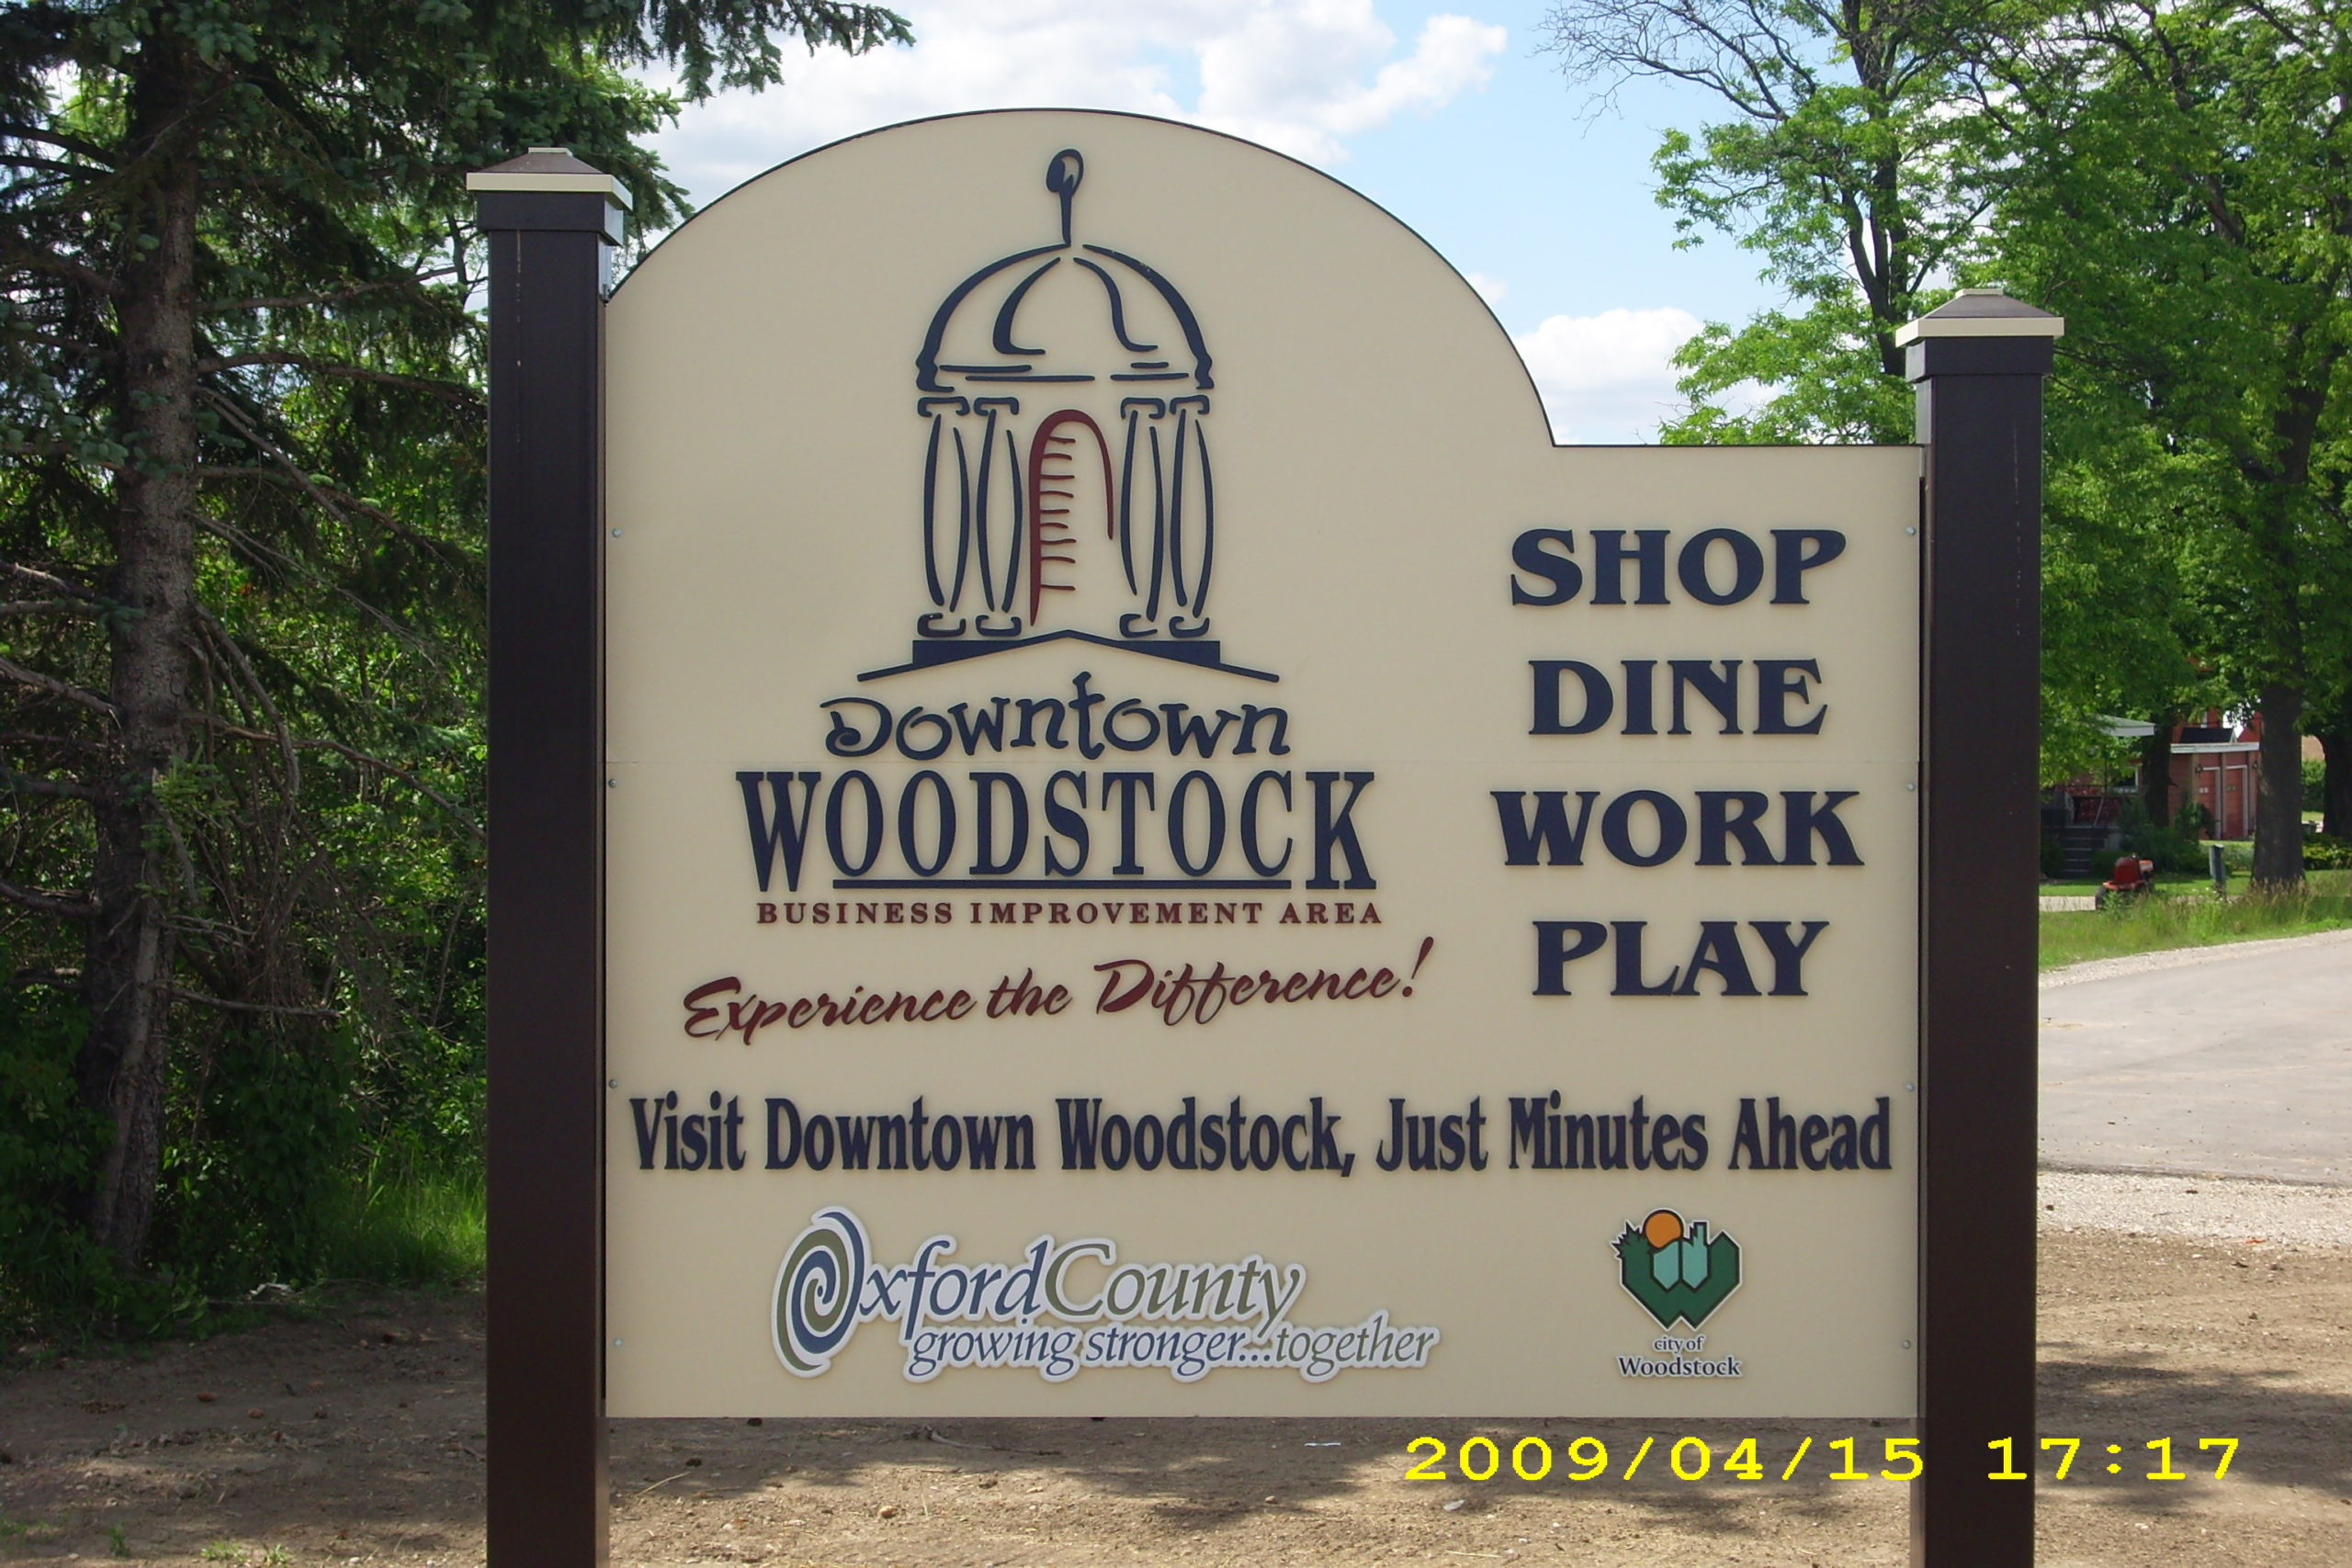 erb-signs-woodstock-BIA-SIGN-scaled-1